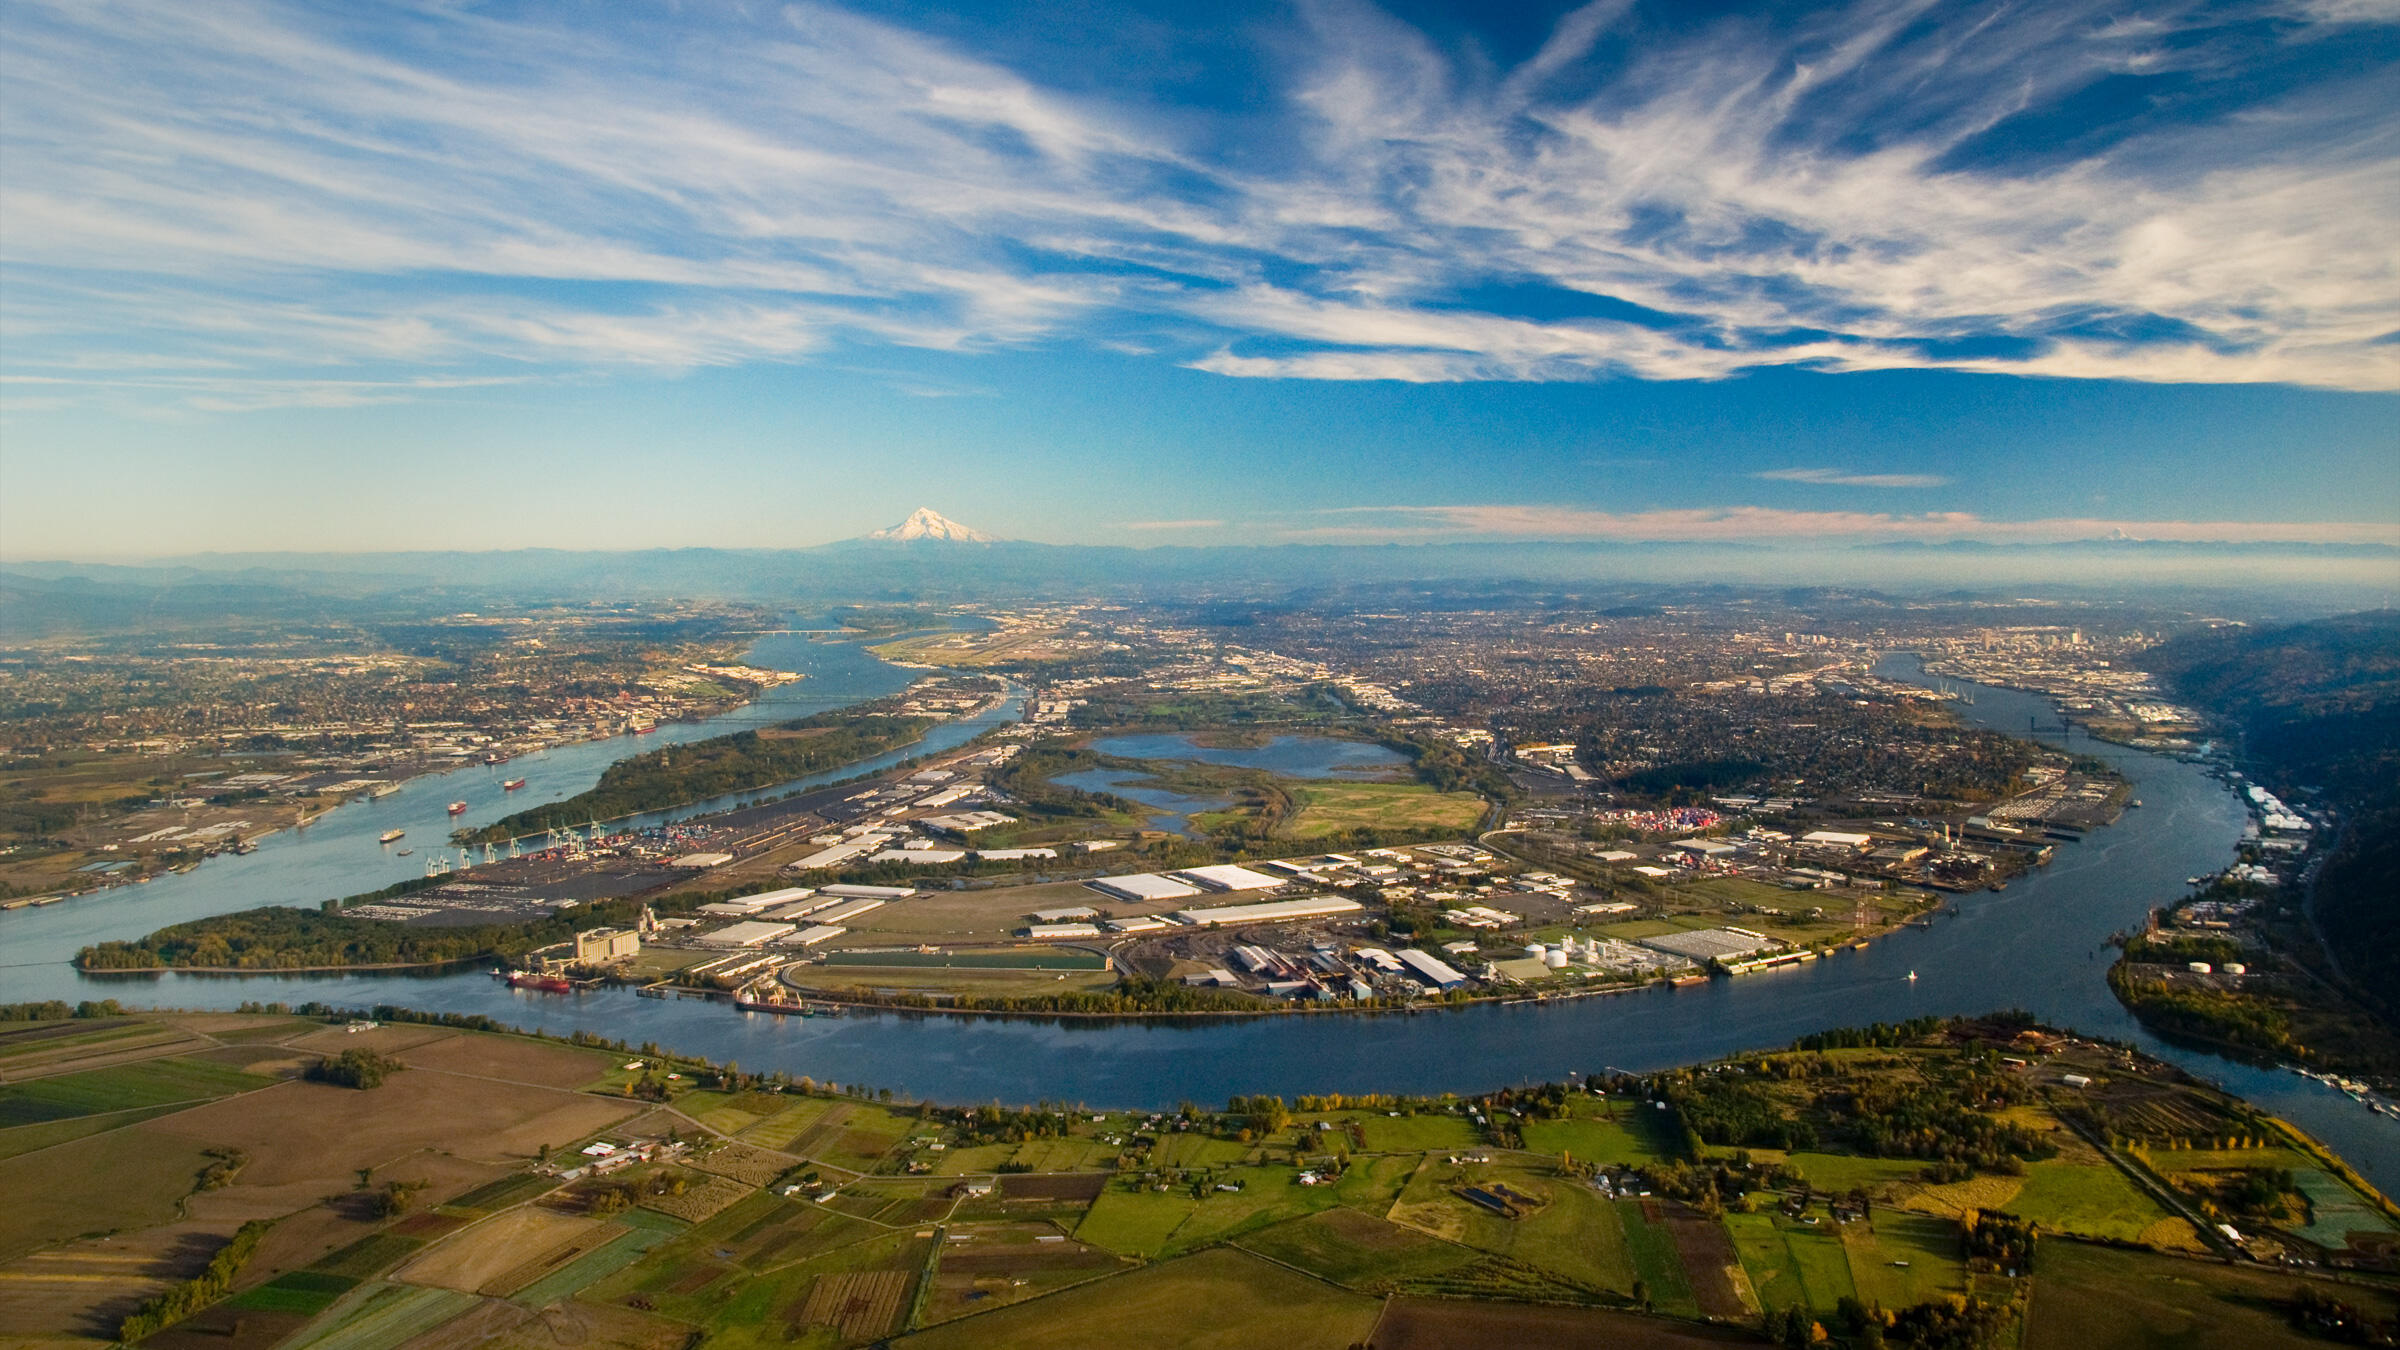 columbia and willamette rivers meet